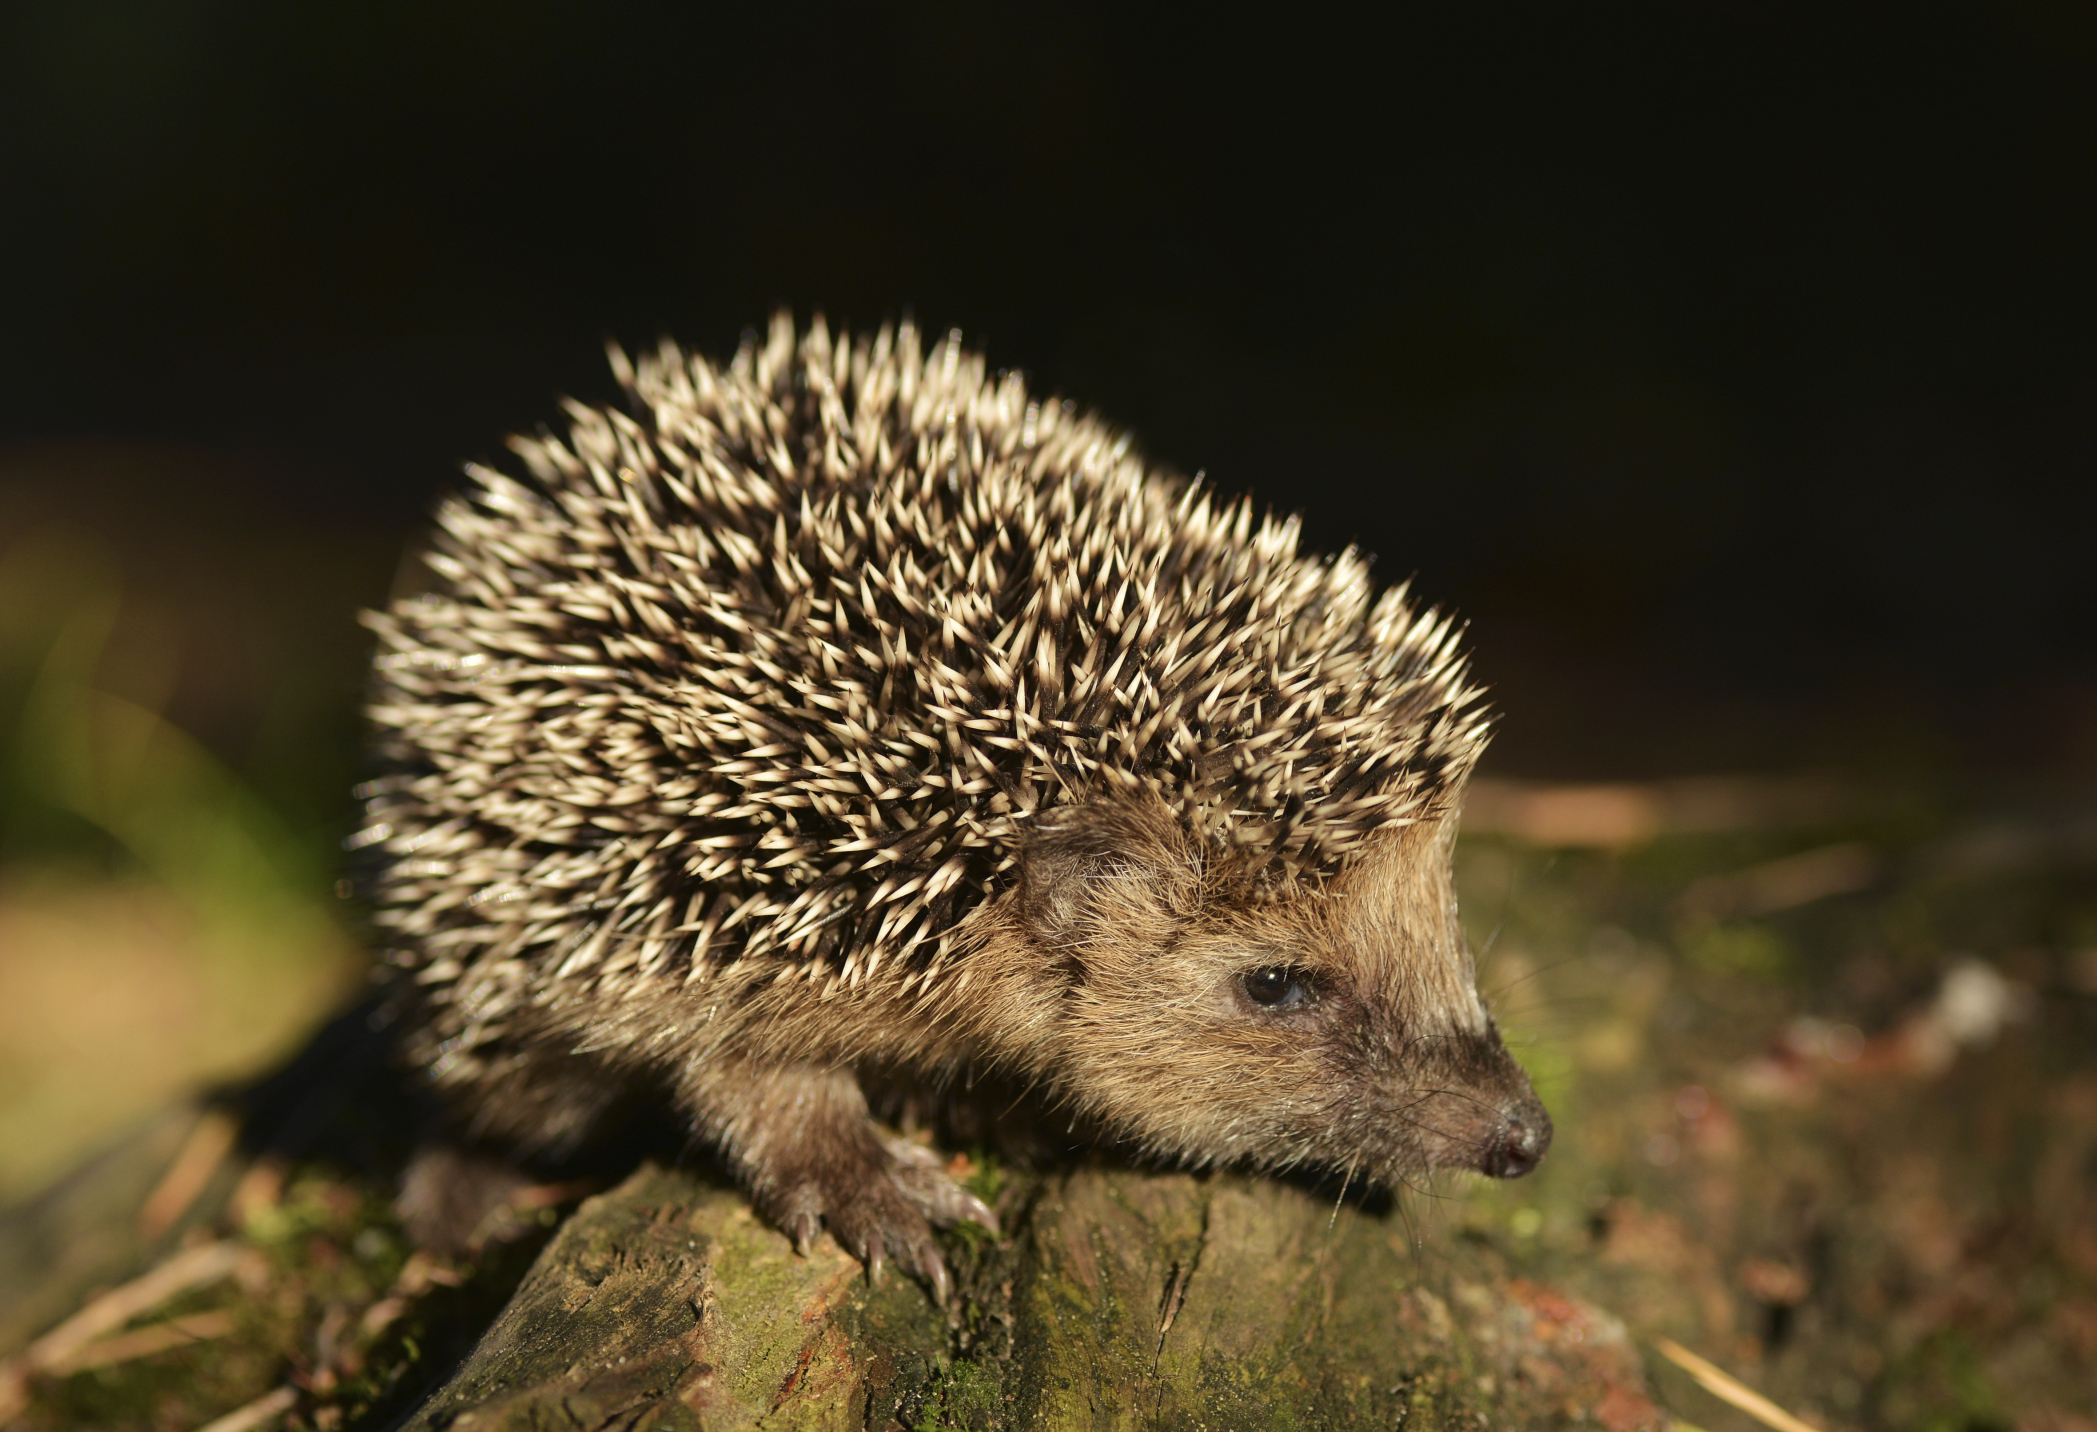 Hedgehog Adaptation Sciencing How To Build Nocturnal Animals Whisker